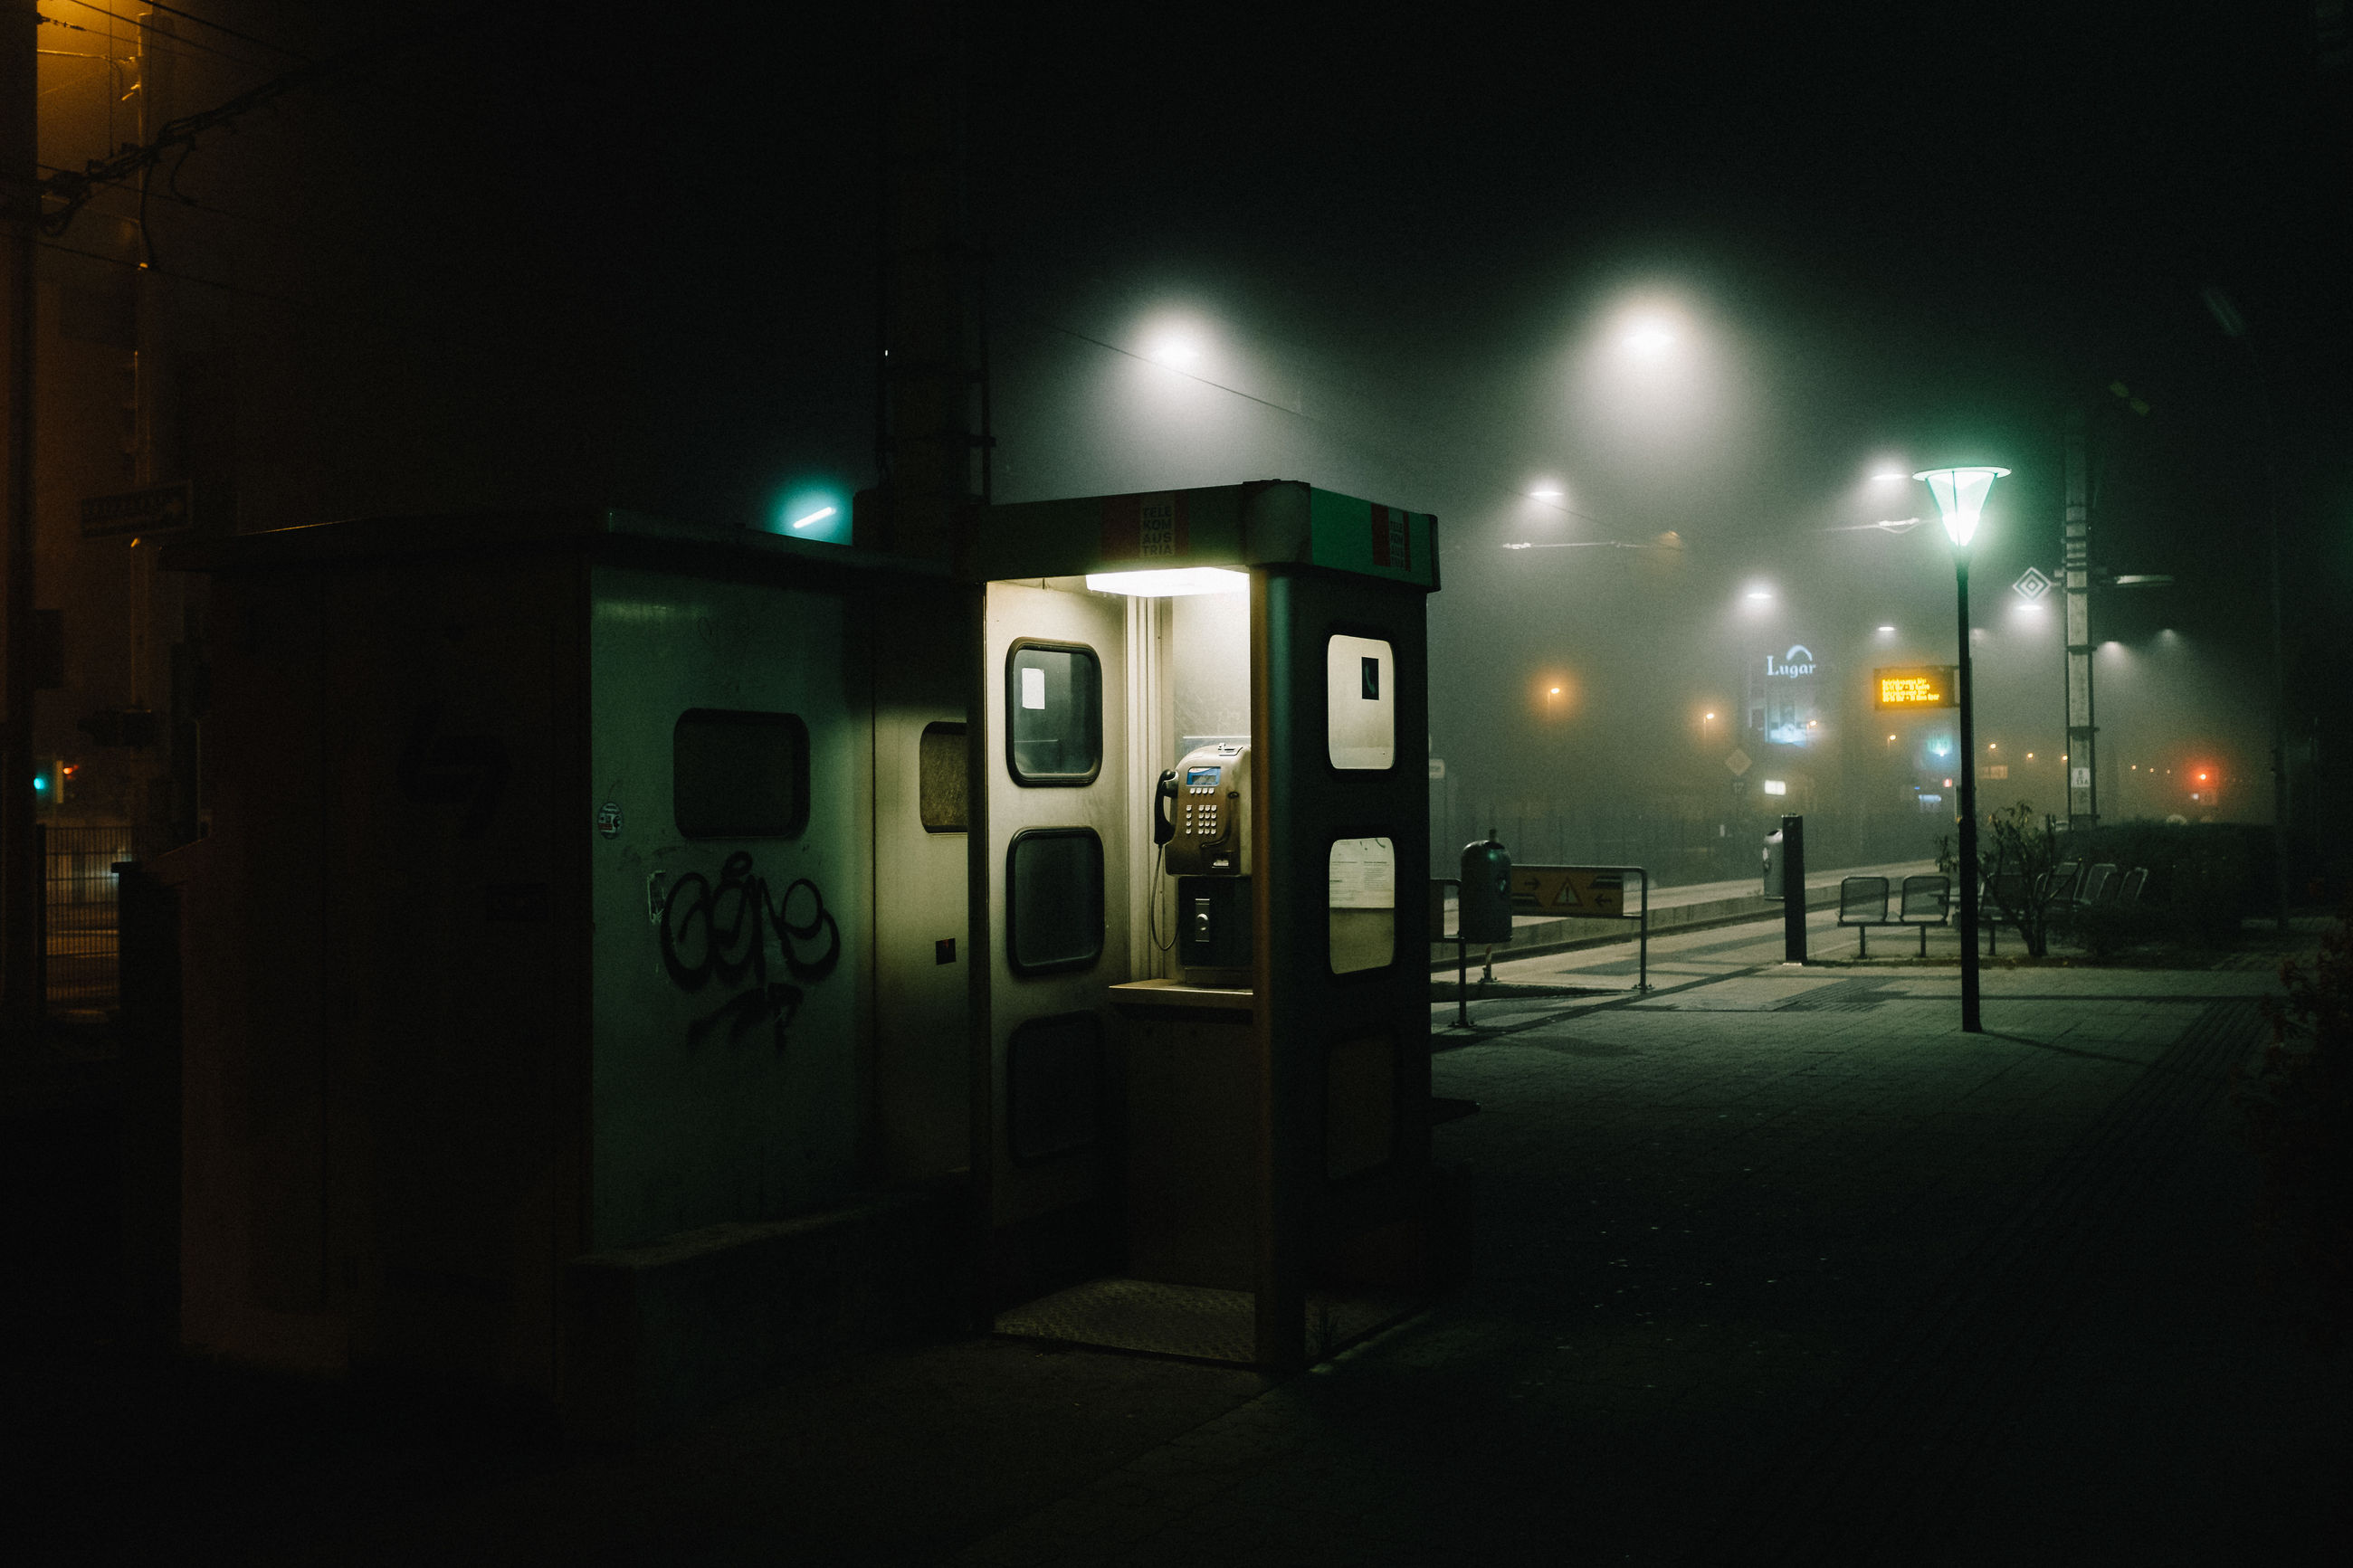 illuminated, night, no people, telephone booth, indoors, technology, pay phone